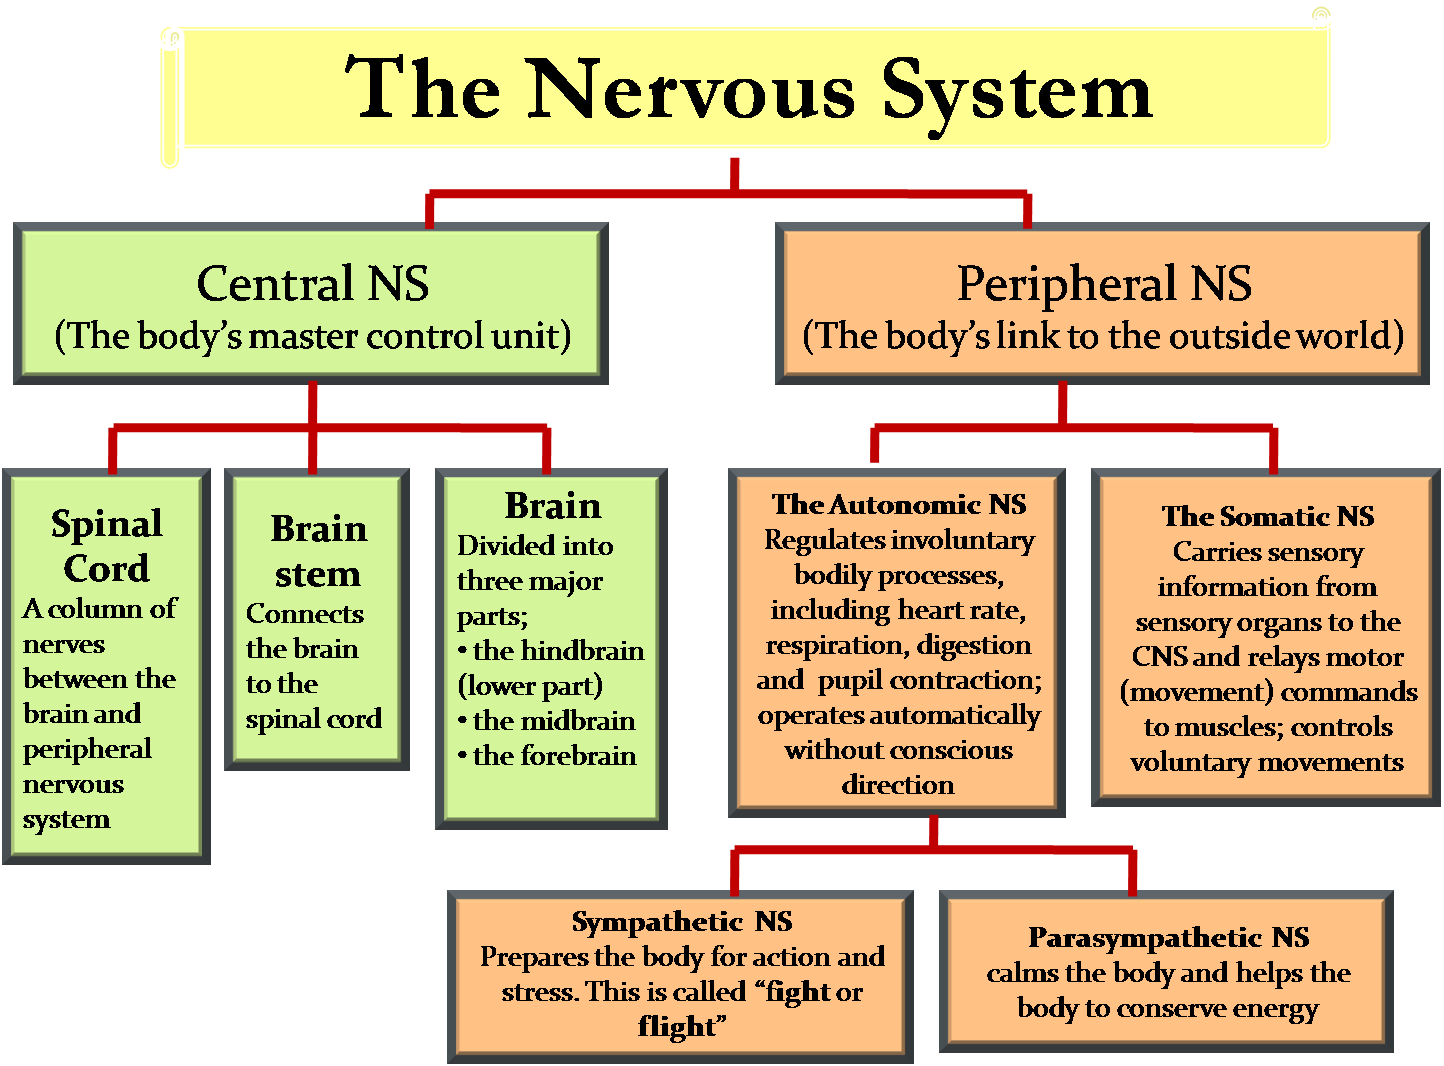 Pin By LearnCBSE On ICSE Solutions Pinterest Nervous System